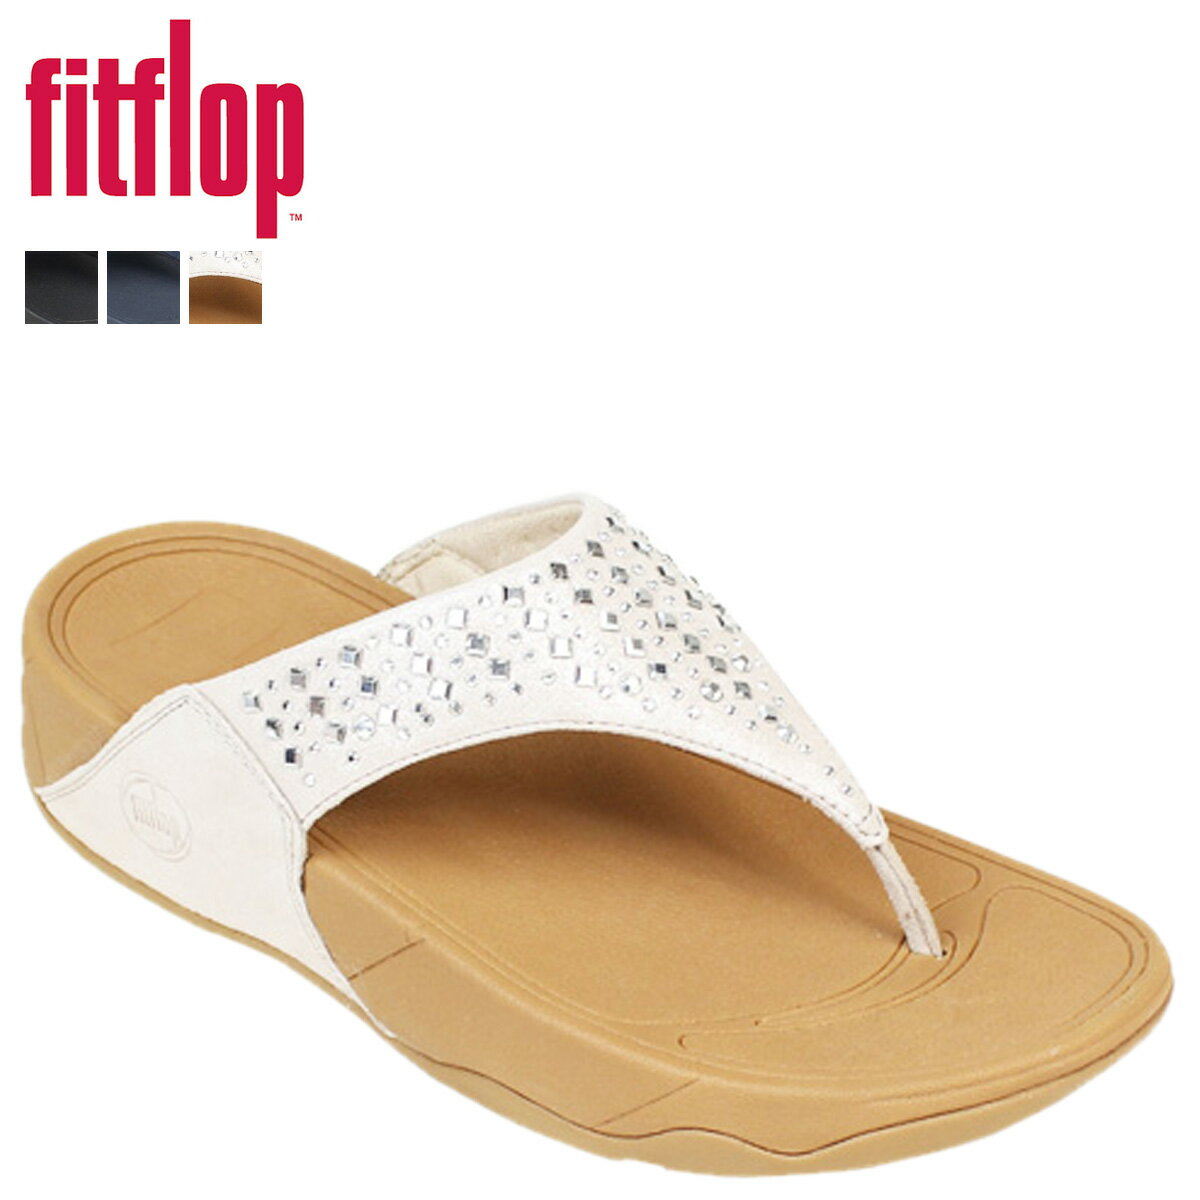 FitFlop サンダル フィットフロップ ノビー NOVY SHIMMER SUEDE 507 レディース